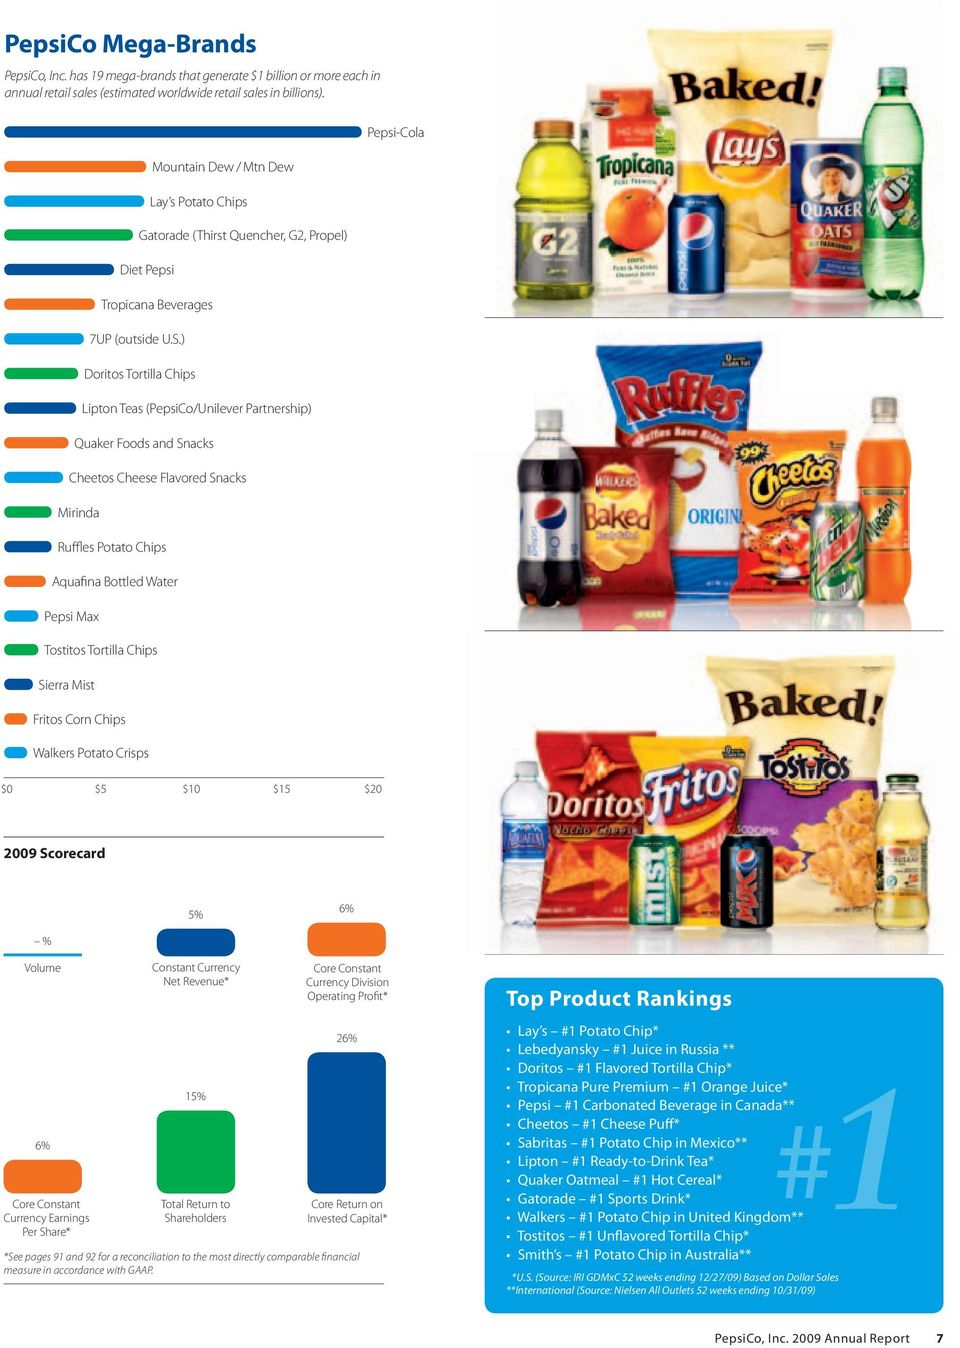 ) Doritos Tortilla Chips Lipton Teas (PepsiCo/Unilever Partnership) Quaker Foods and Snacks Cheetos Cheese Flavored Snacks Mirinda Ruffles Potato Chips Aquafina Bottled Water Pepsi Max Tostitos